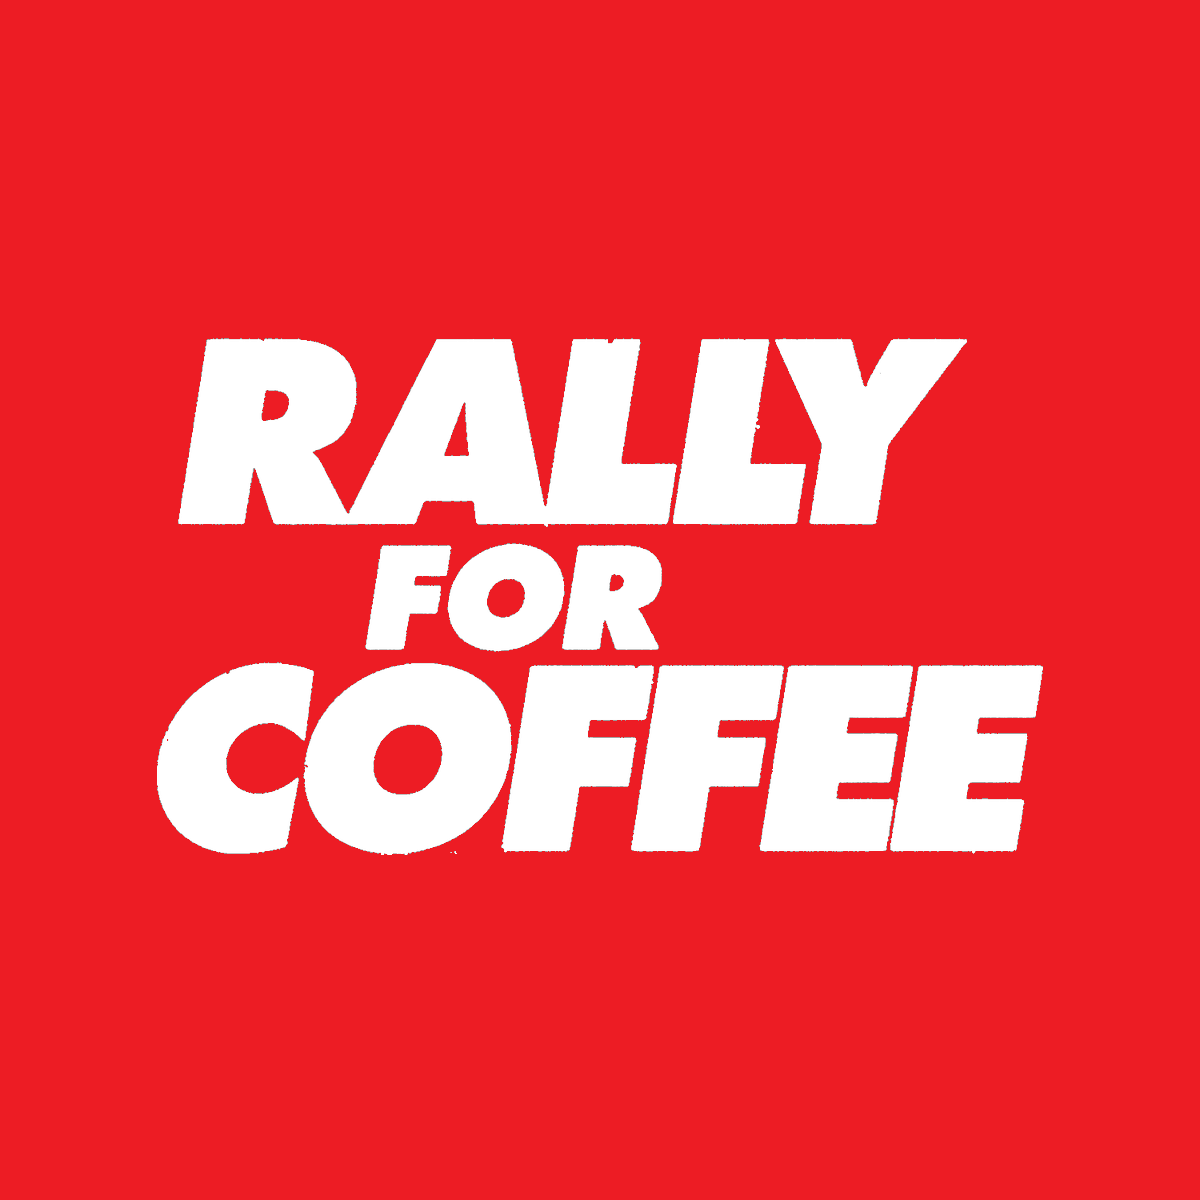 Coffee shops and their employees have been devastated by the effects of COVID-19 and social distancing measures. @thecreatedco is asking everyone to #RallyforCoffee on Sat., April 11th by making a purchase at your local #coffee shop or online. Learn more: rallyforcoffee.org